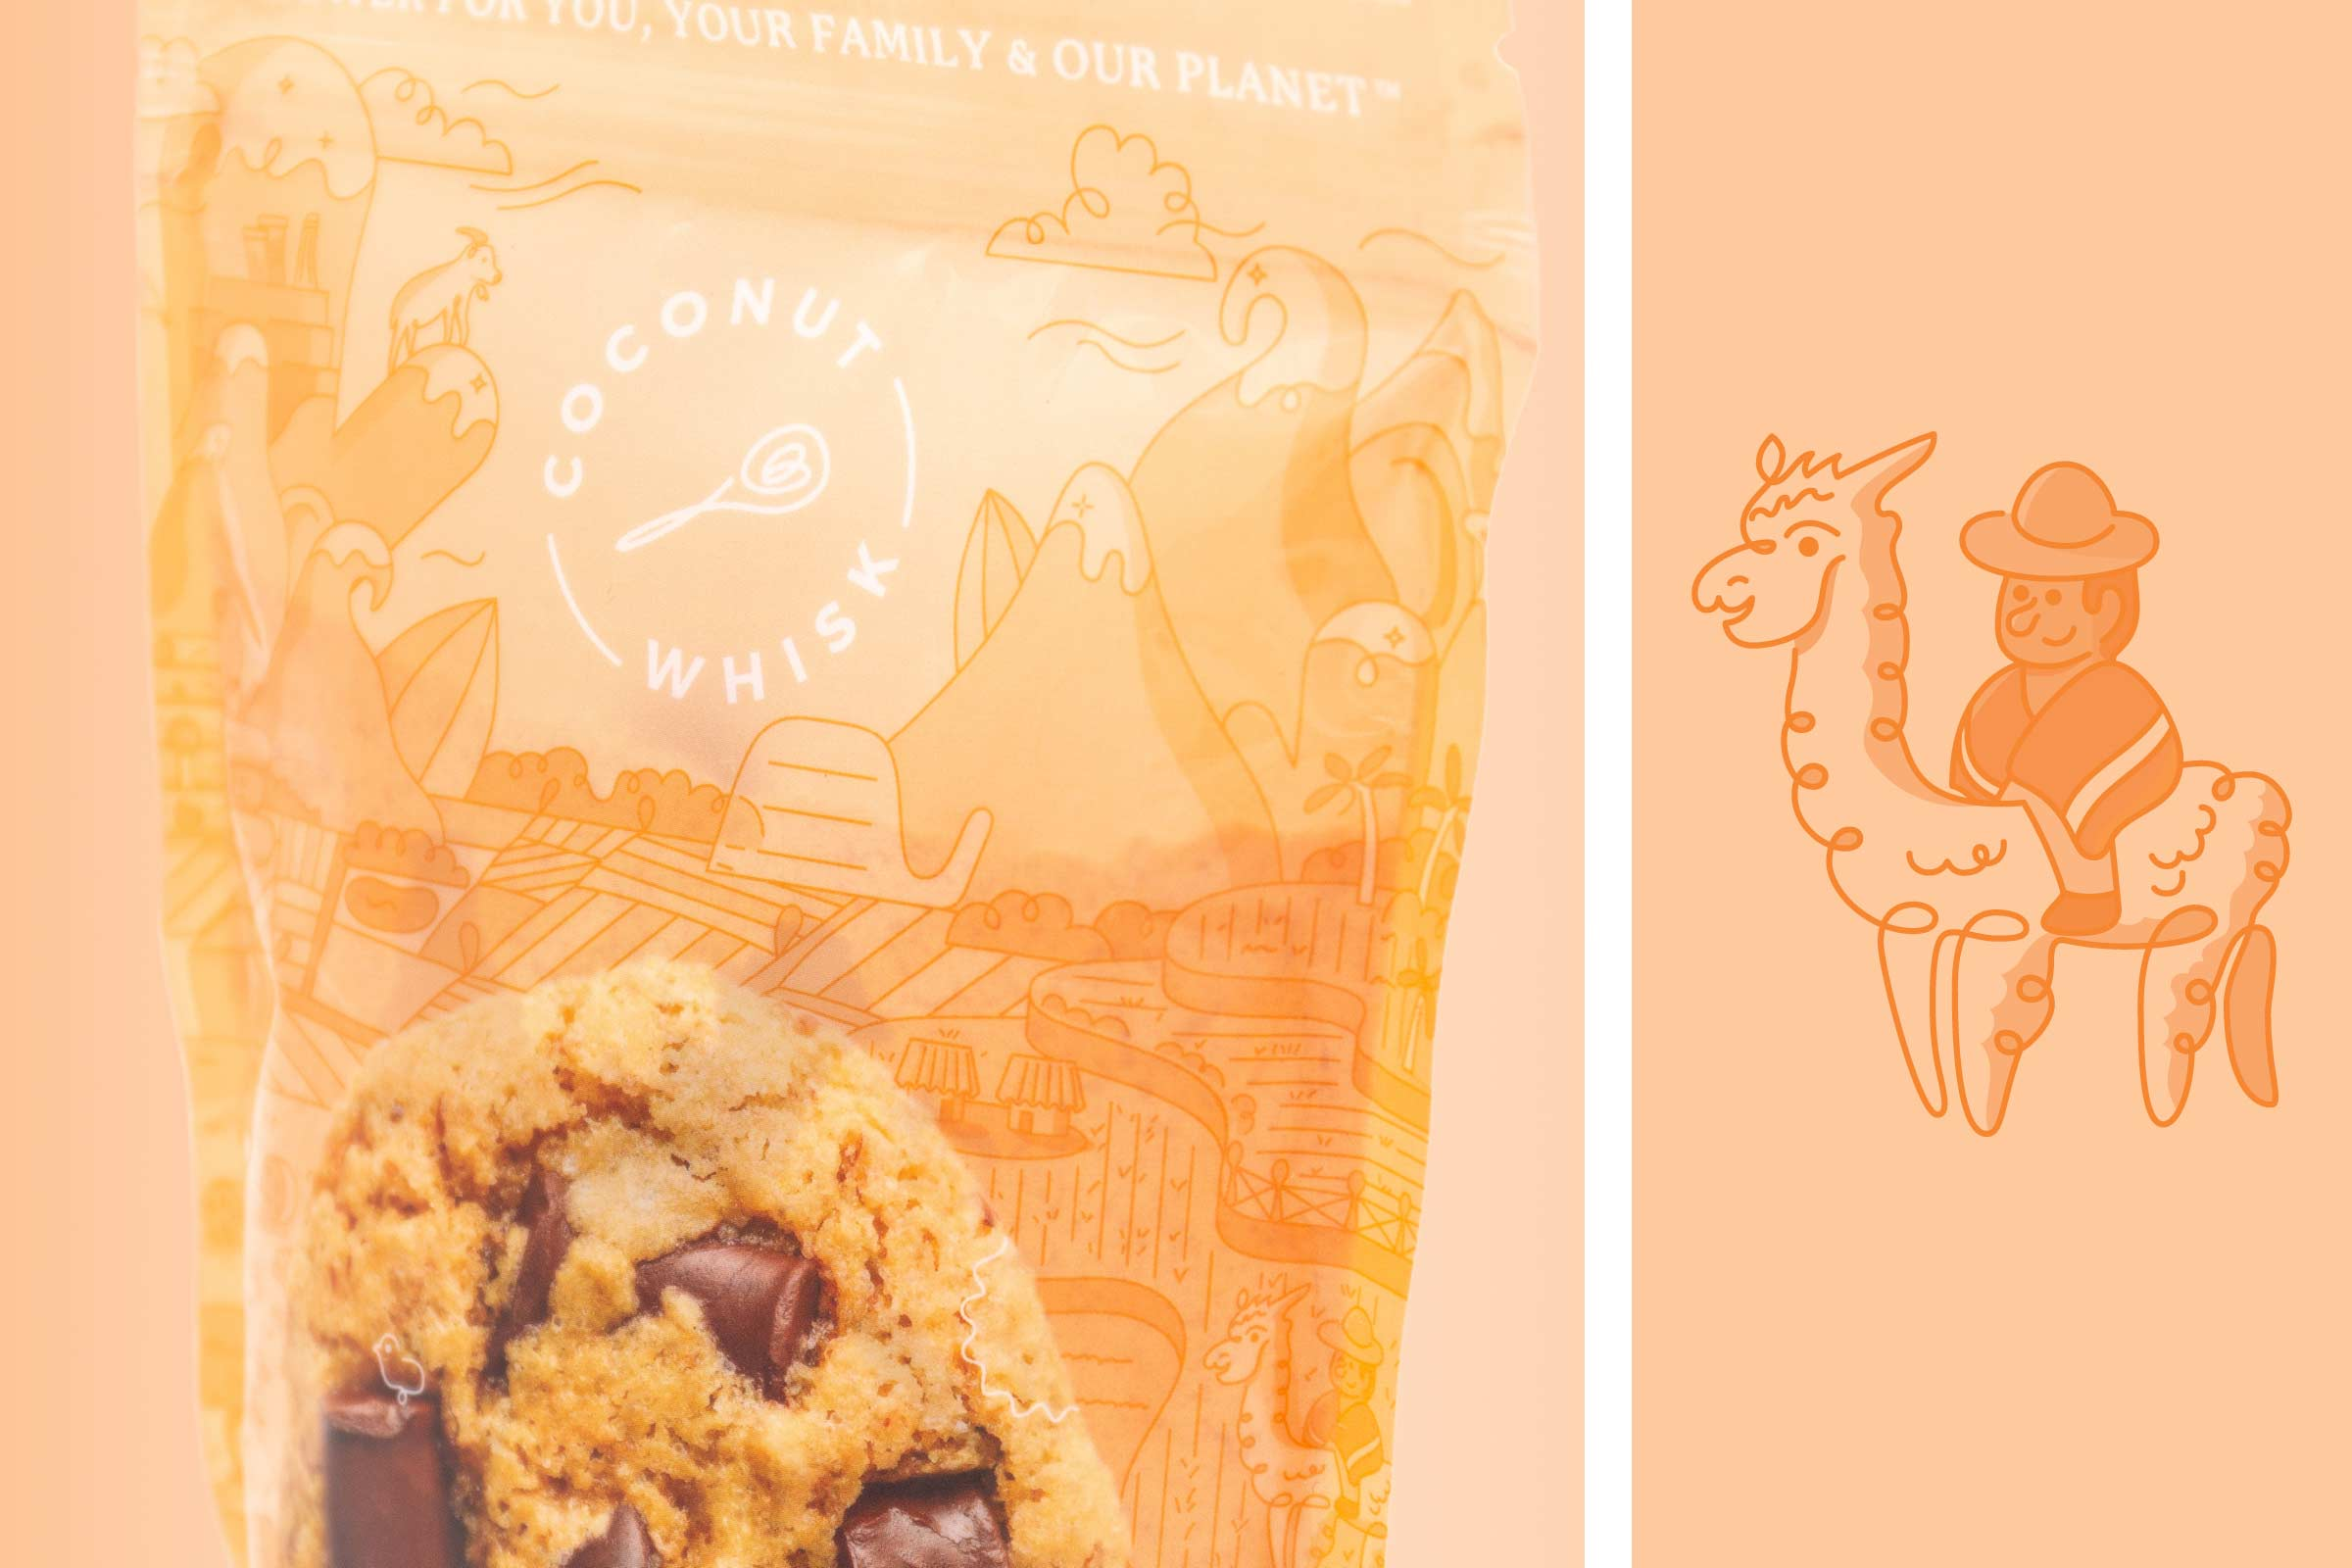 coconut whisk chocolate chip cookie packaging detail